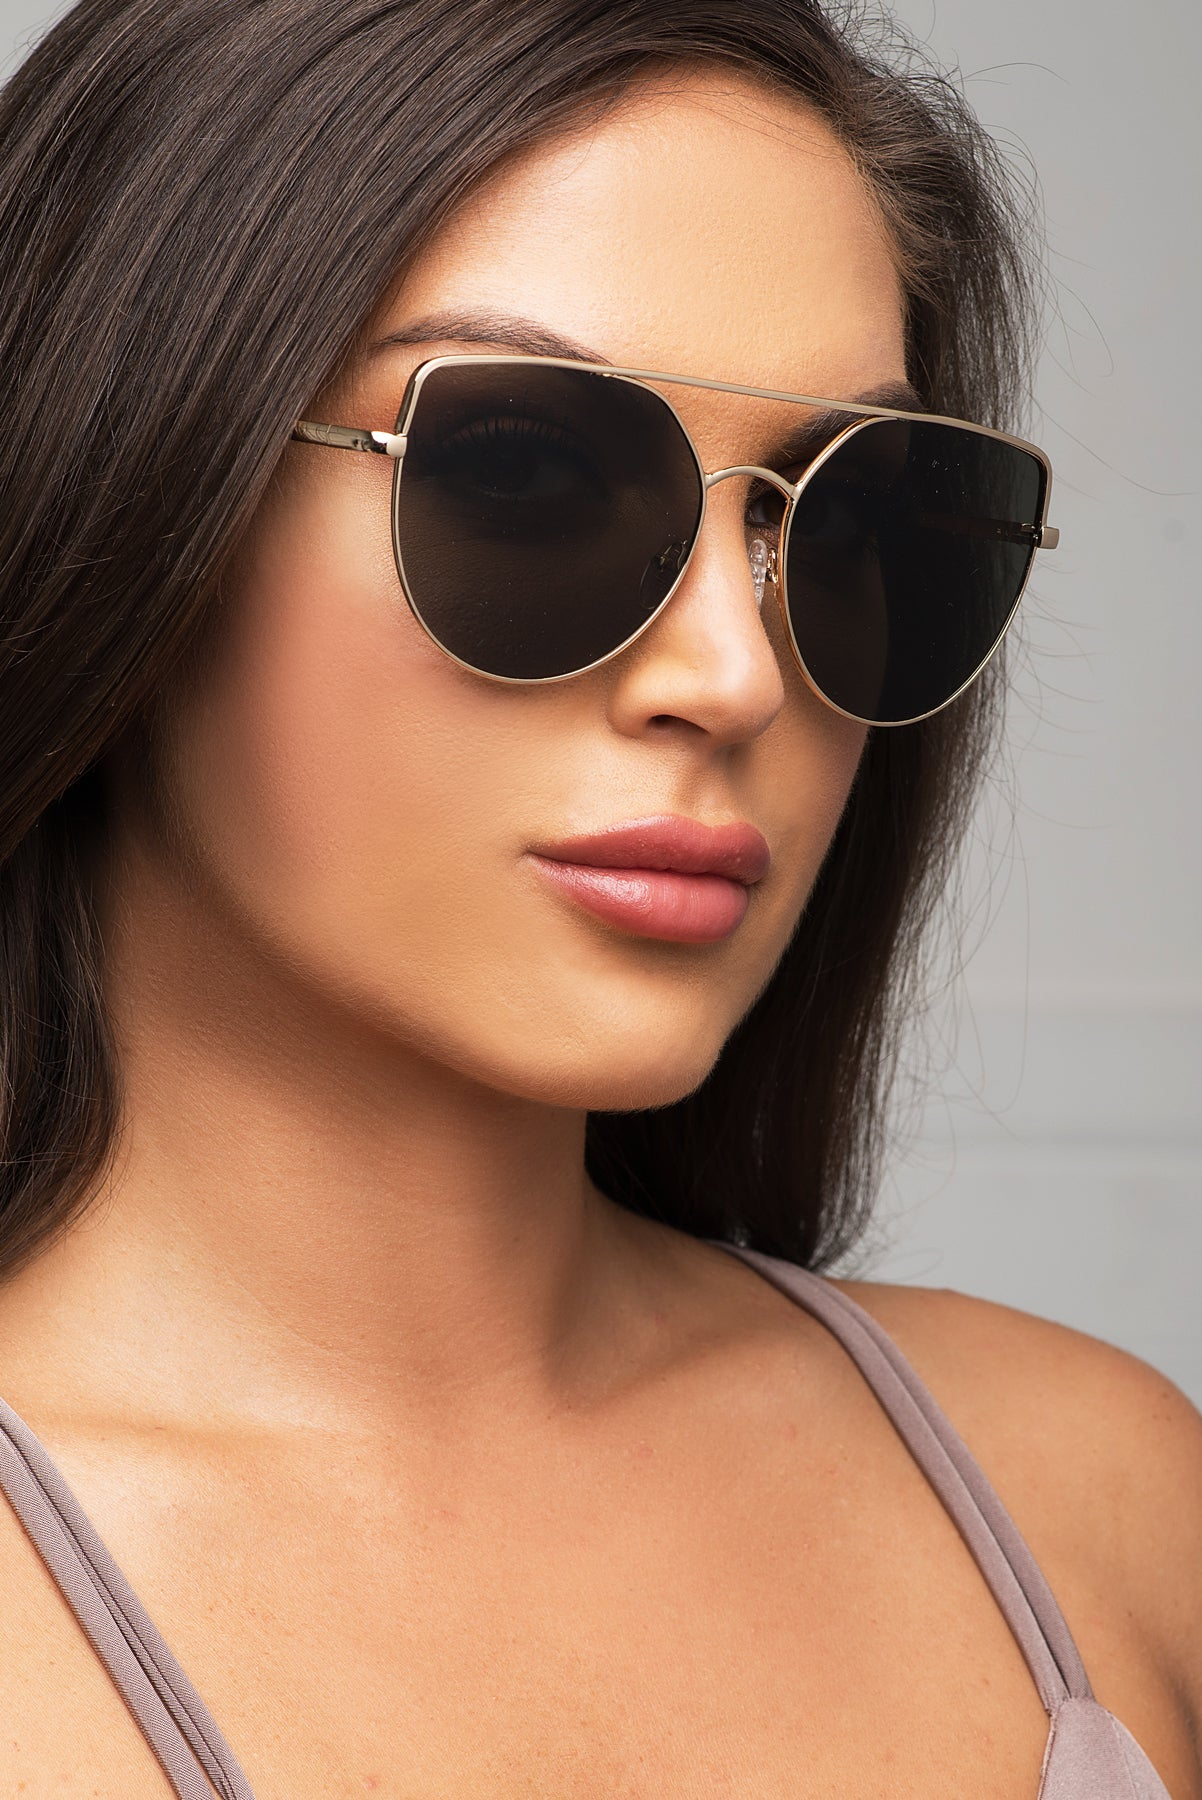 Stylish Shades Sunglasses